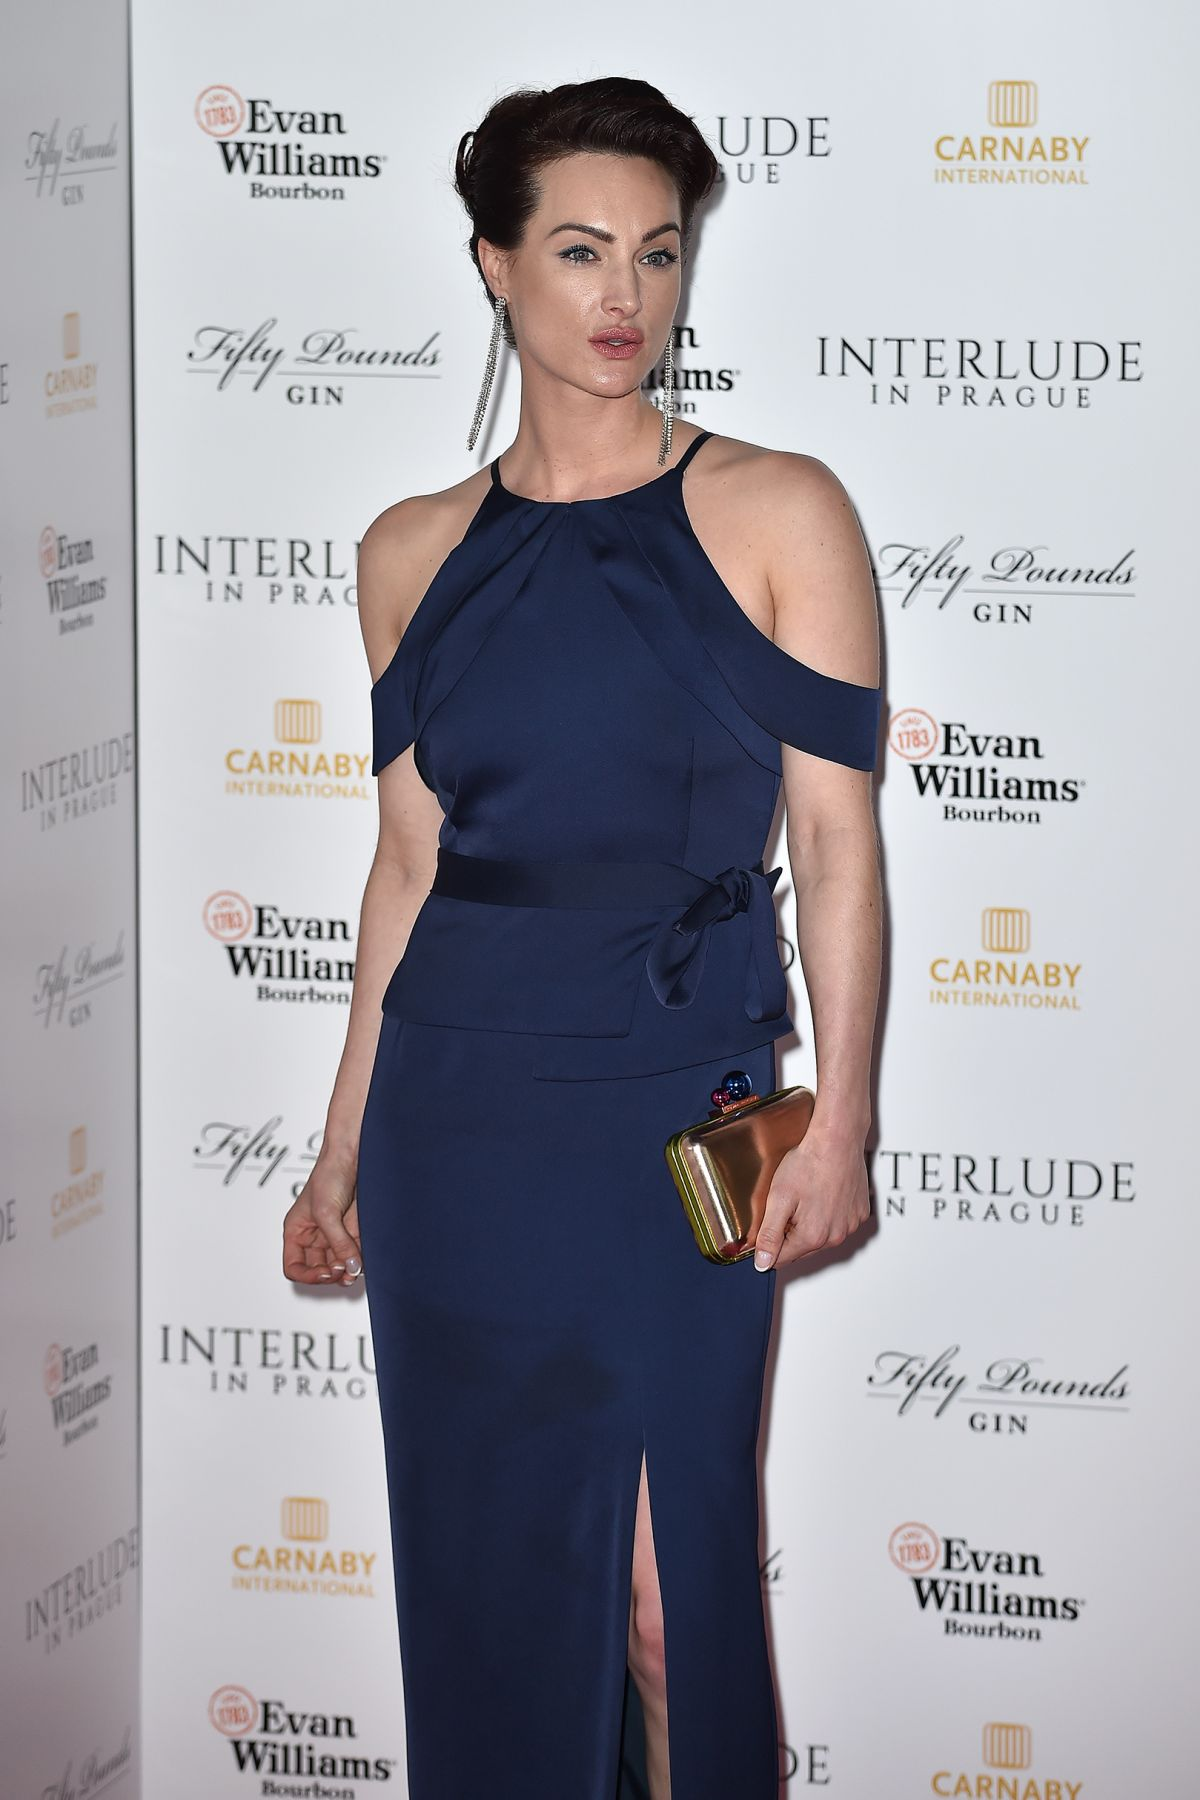 CHARLOTTE PETERS at Interlude in Prague Premiere in London 05/11/2017